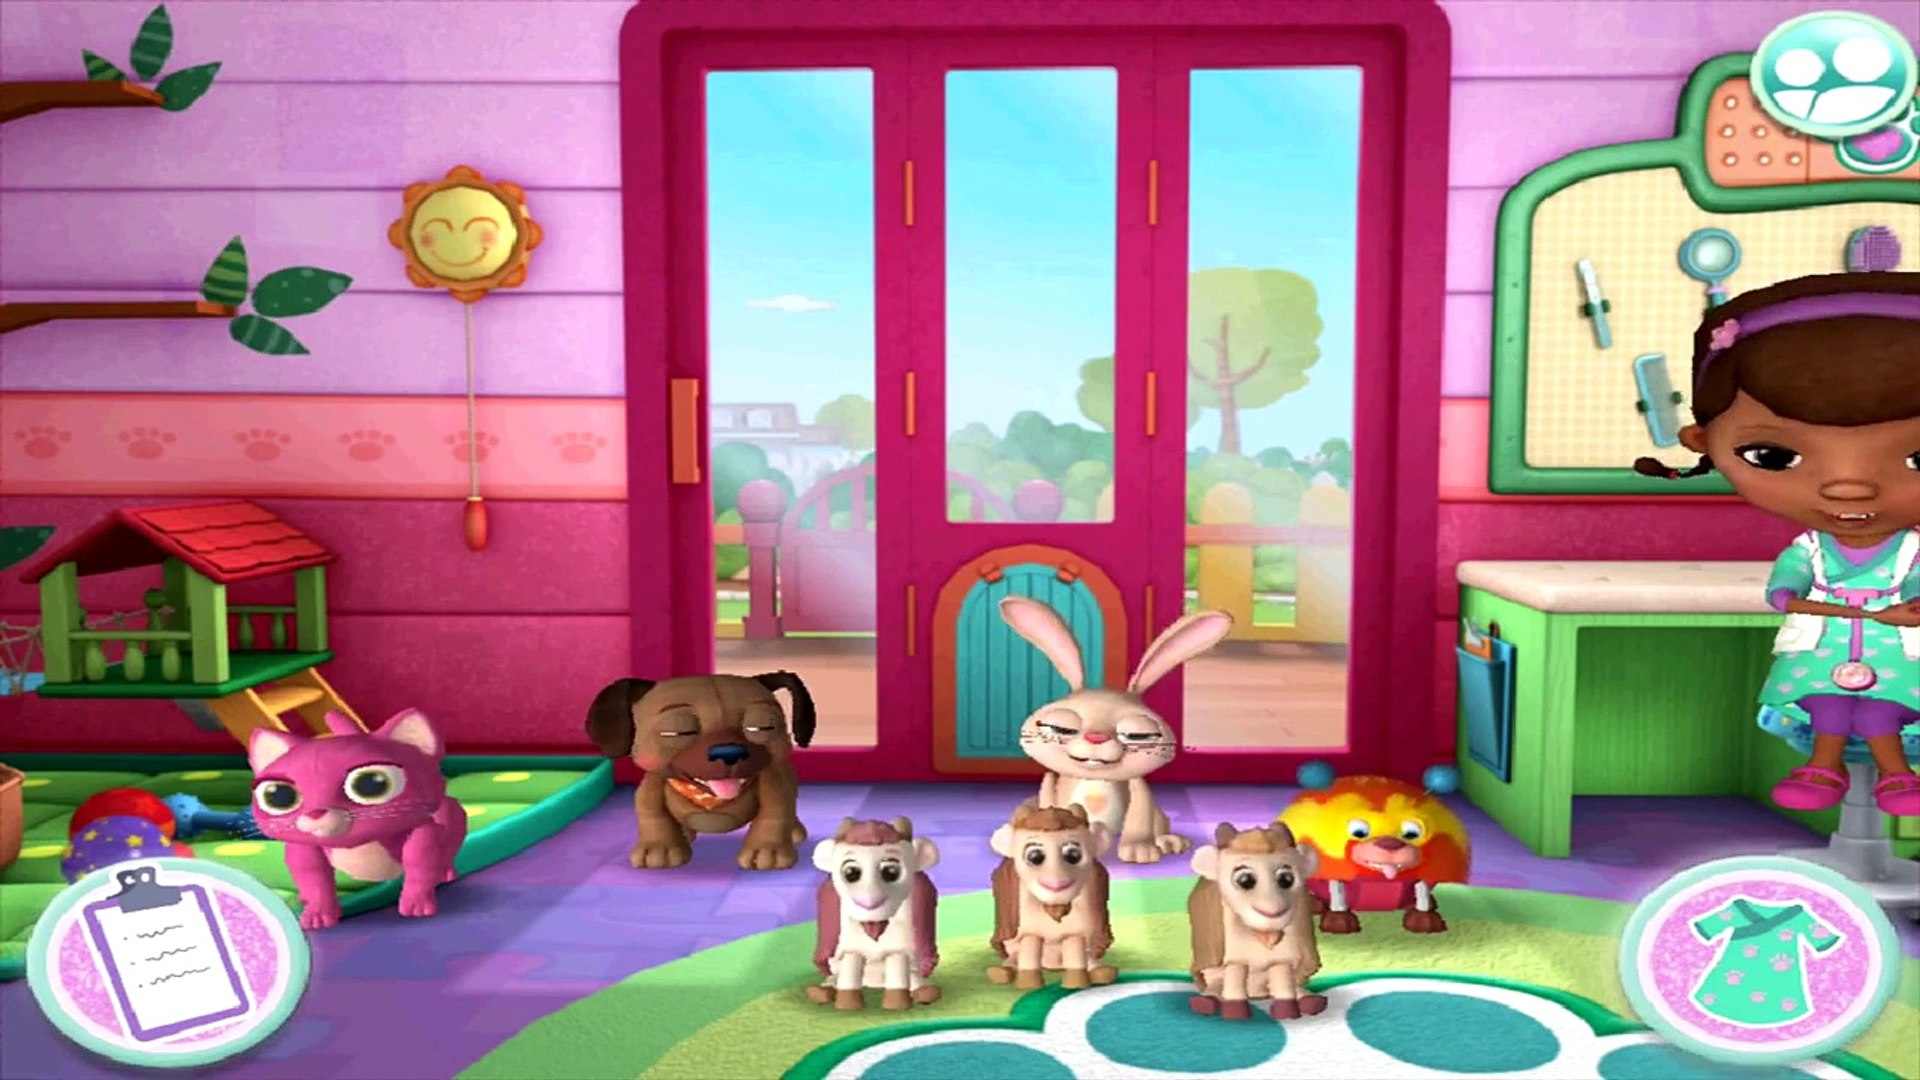 Doc McStuffins Pet Vet  Game Episode Fixing Pet Toys - Kids Cartoon Episode